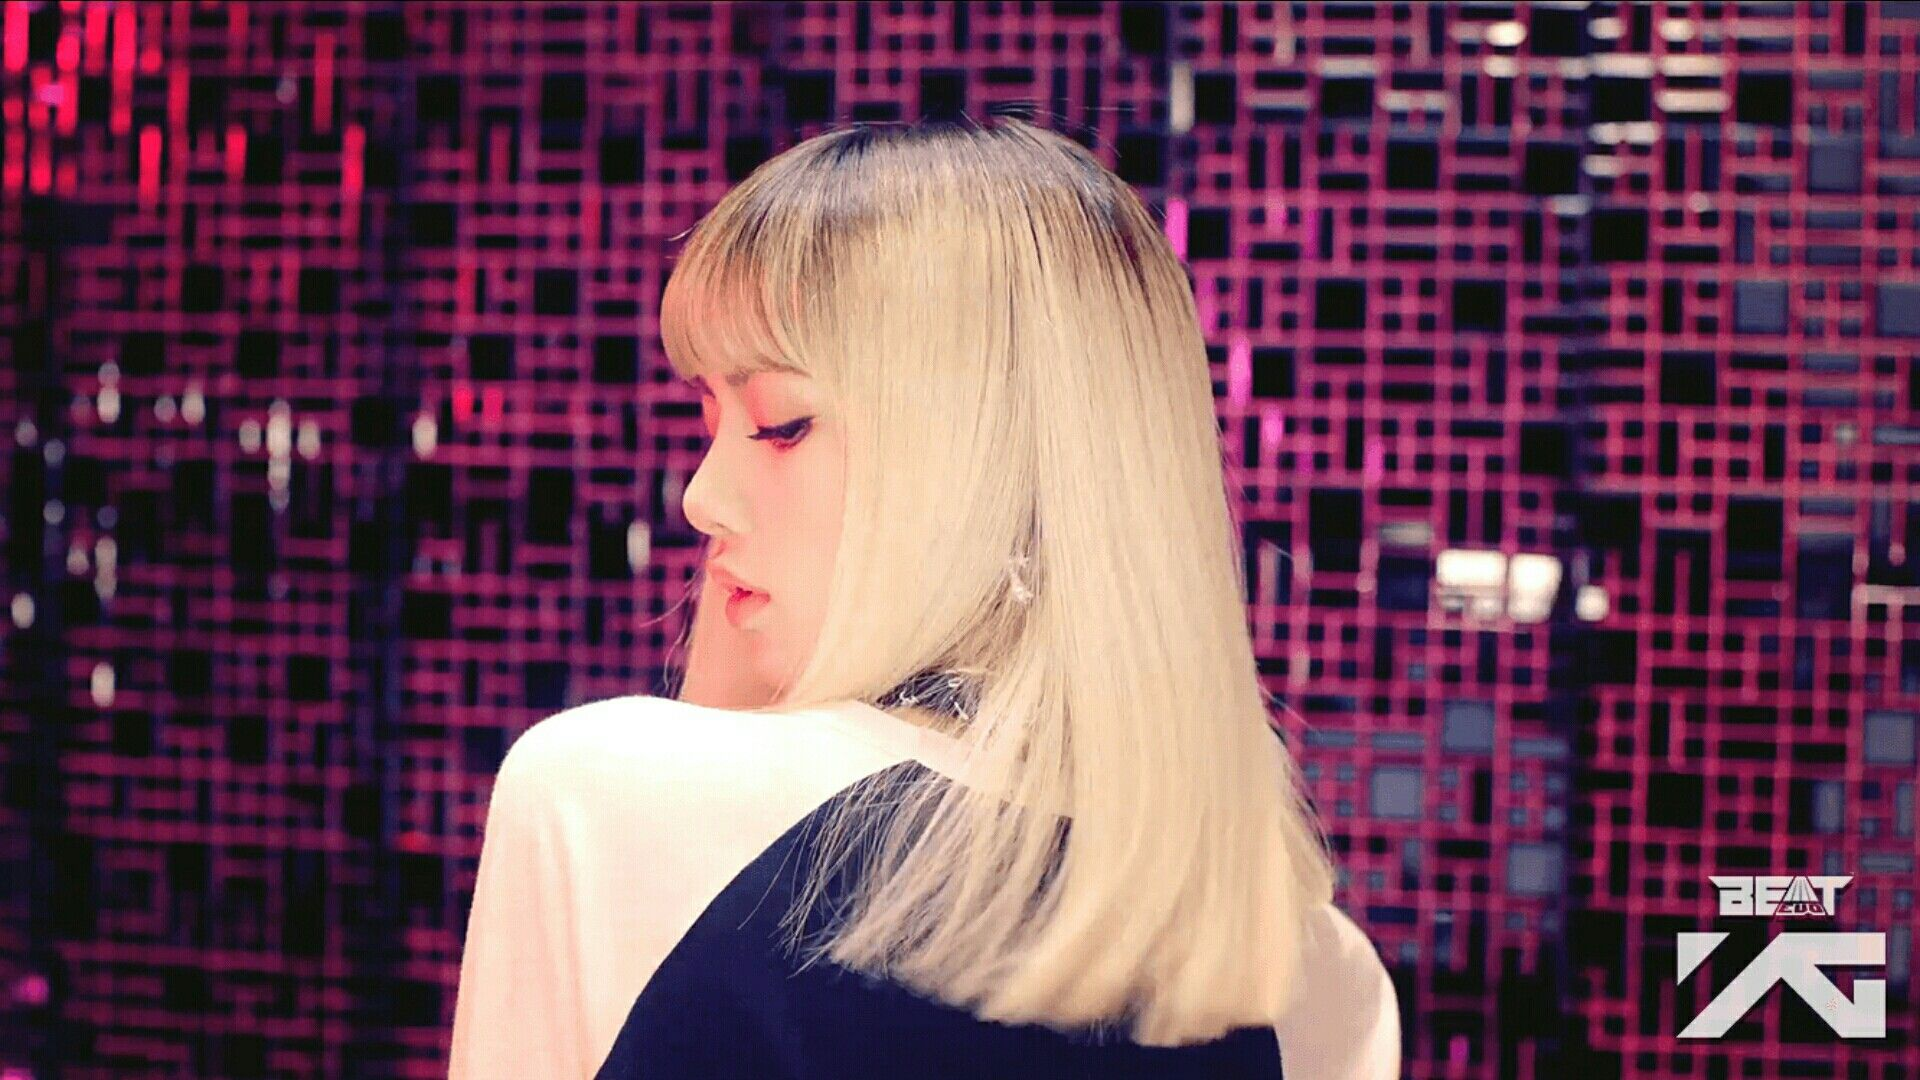 Pin By Asian Everywhere On Beatevo Yg Collection Blackpink Lisa